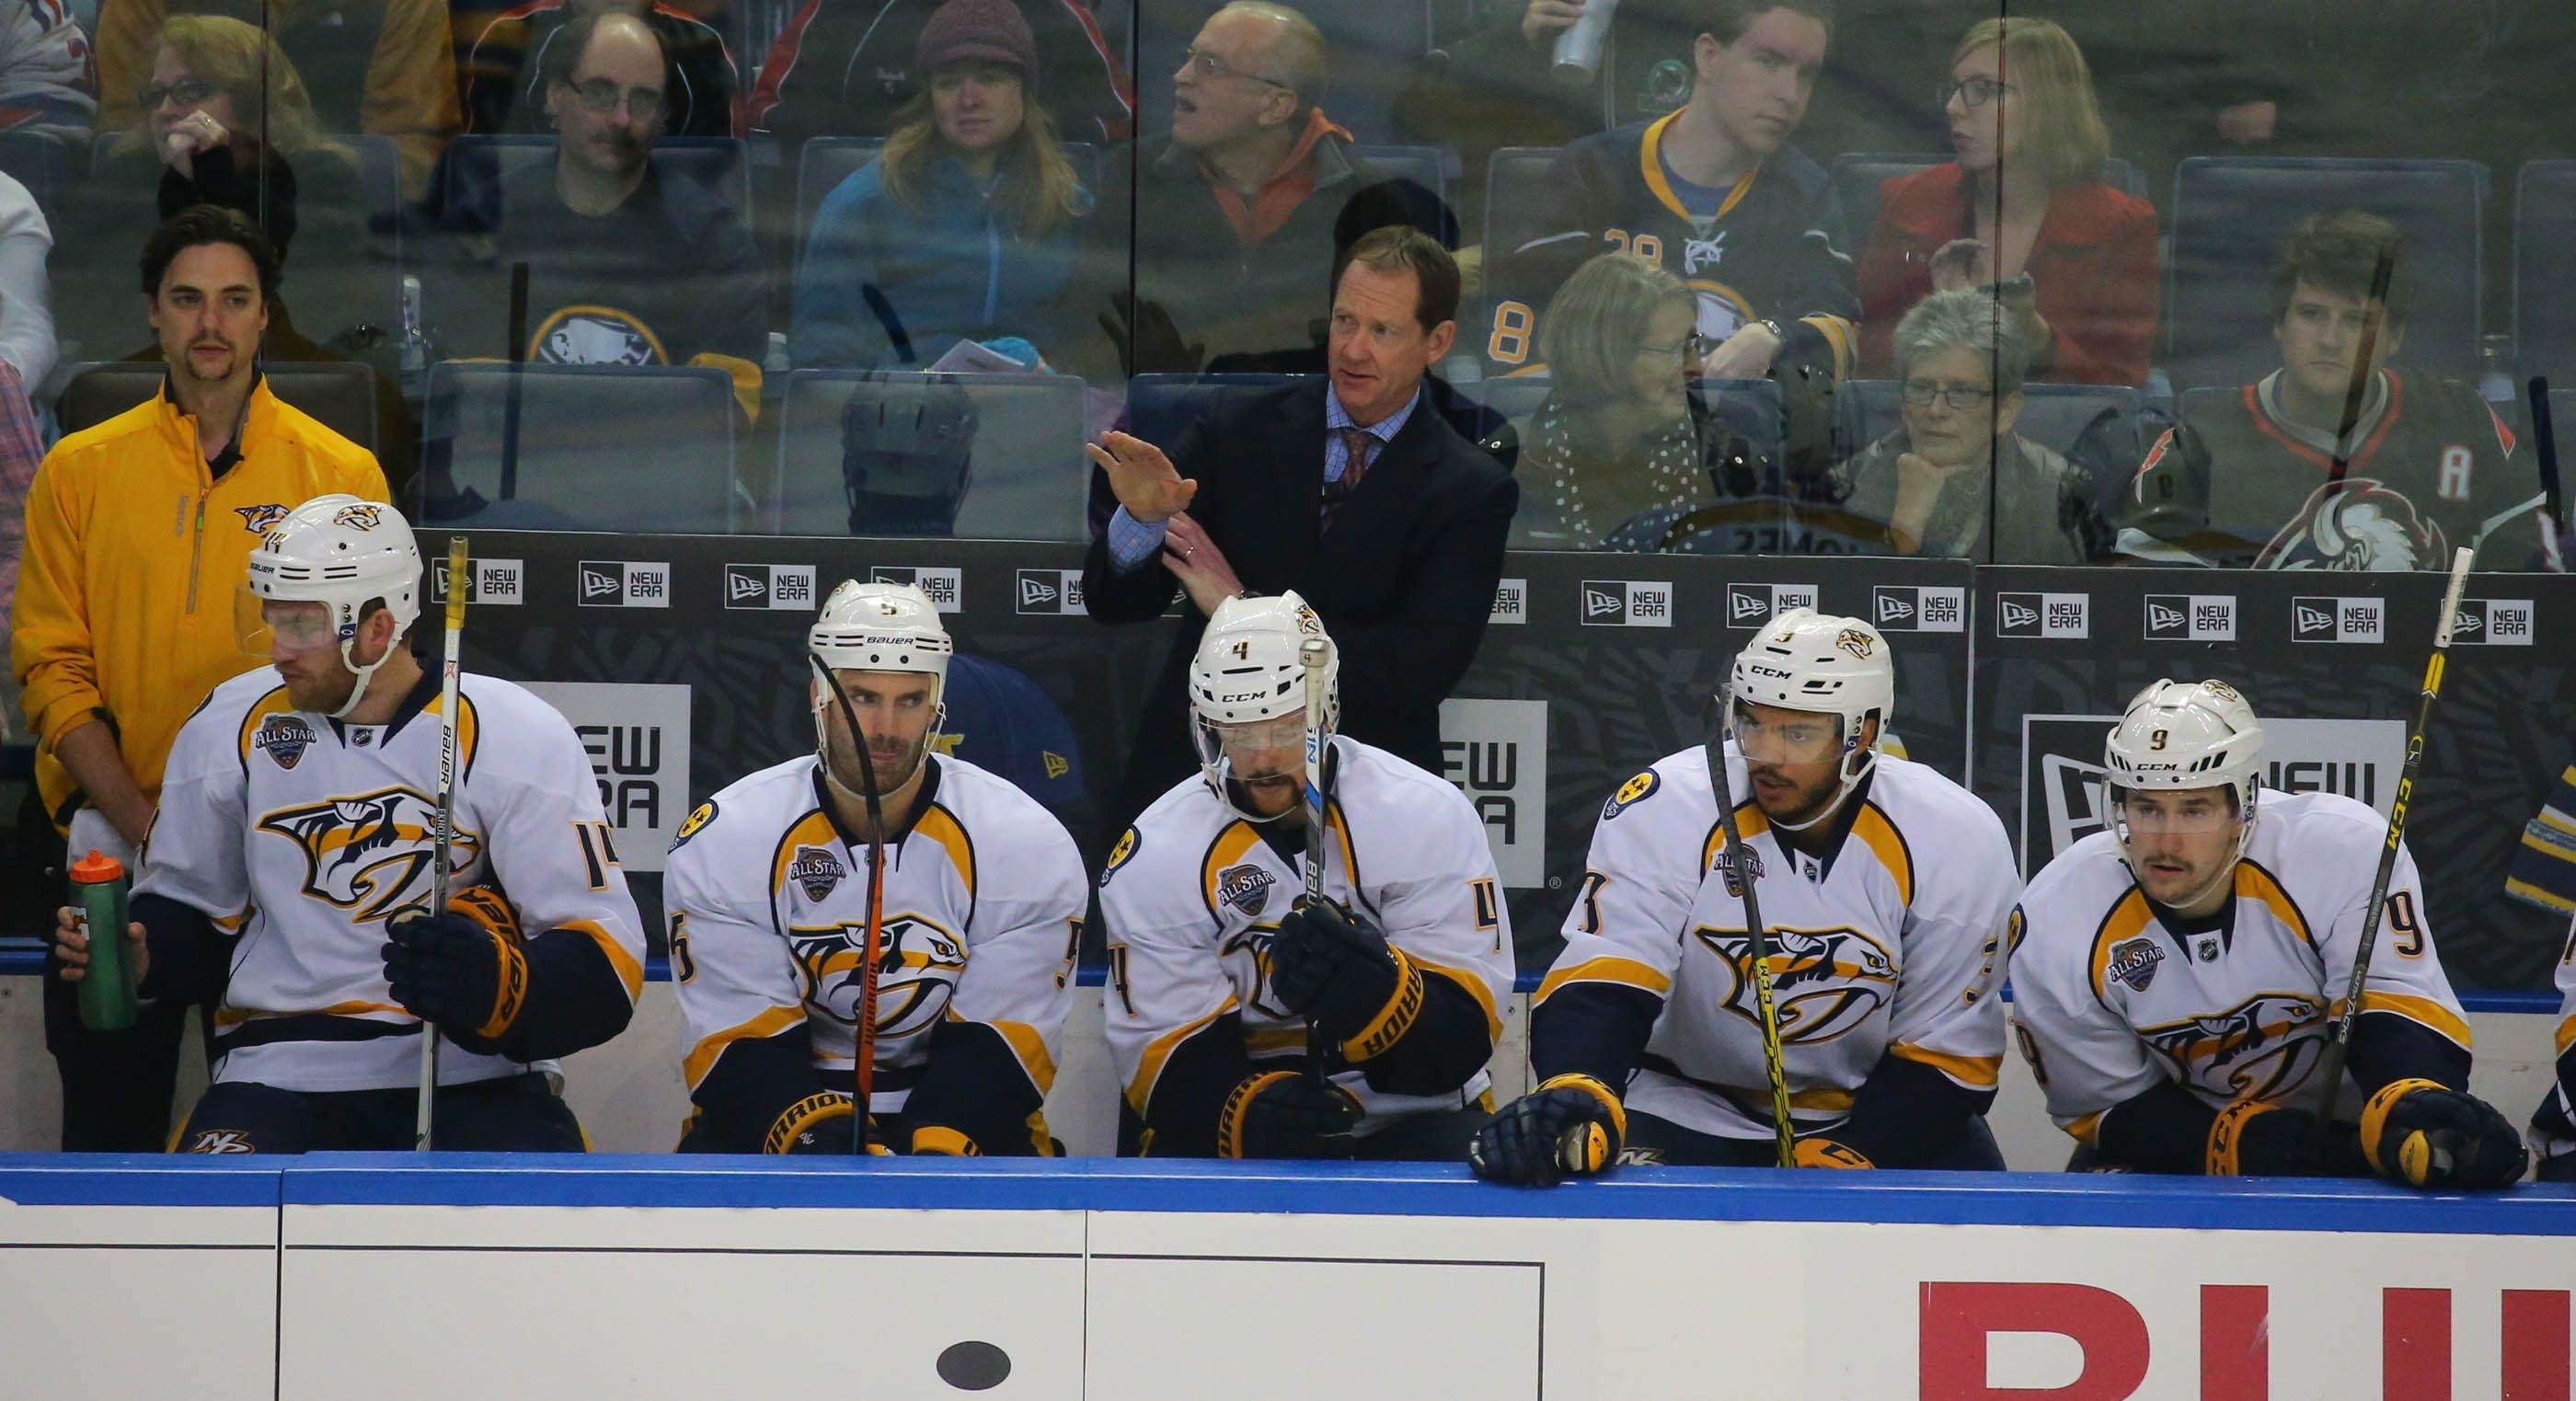 Phil Housley scored more than 1,200 points in his NHL career.